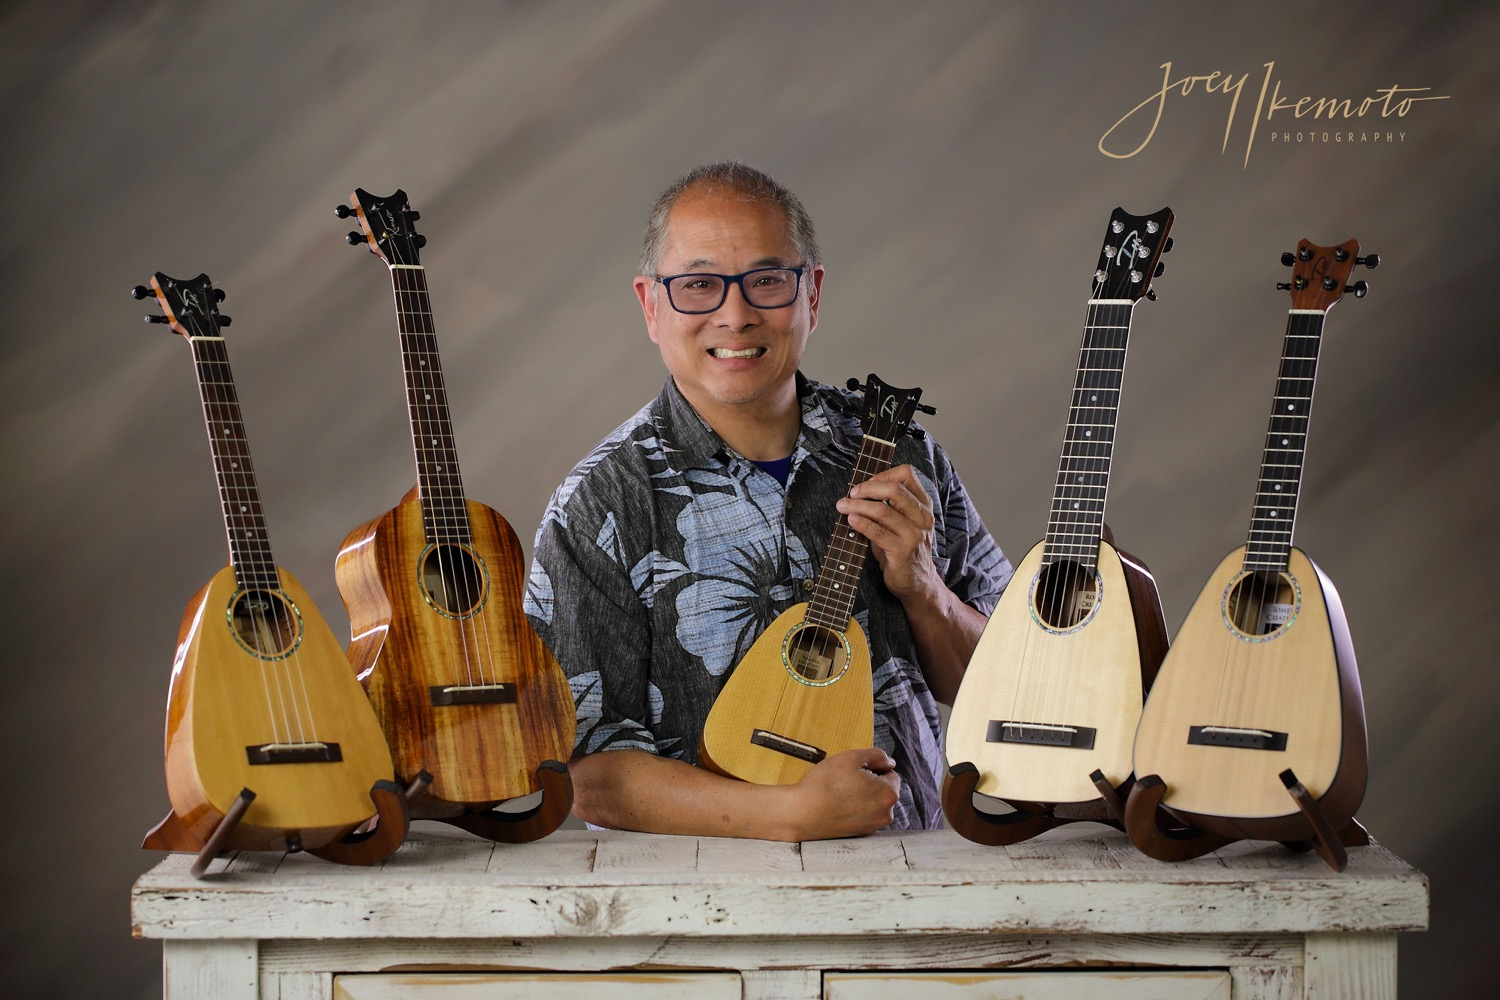 Glen Kamida with (L-R):  Tiny Tenor ,  Grand Tenor ,  XS Soprano ,  Tiny Tenor 6 String ,  Tiny Tenor